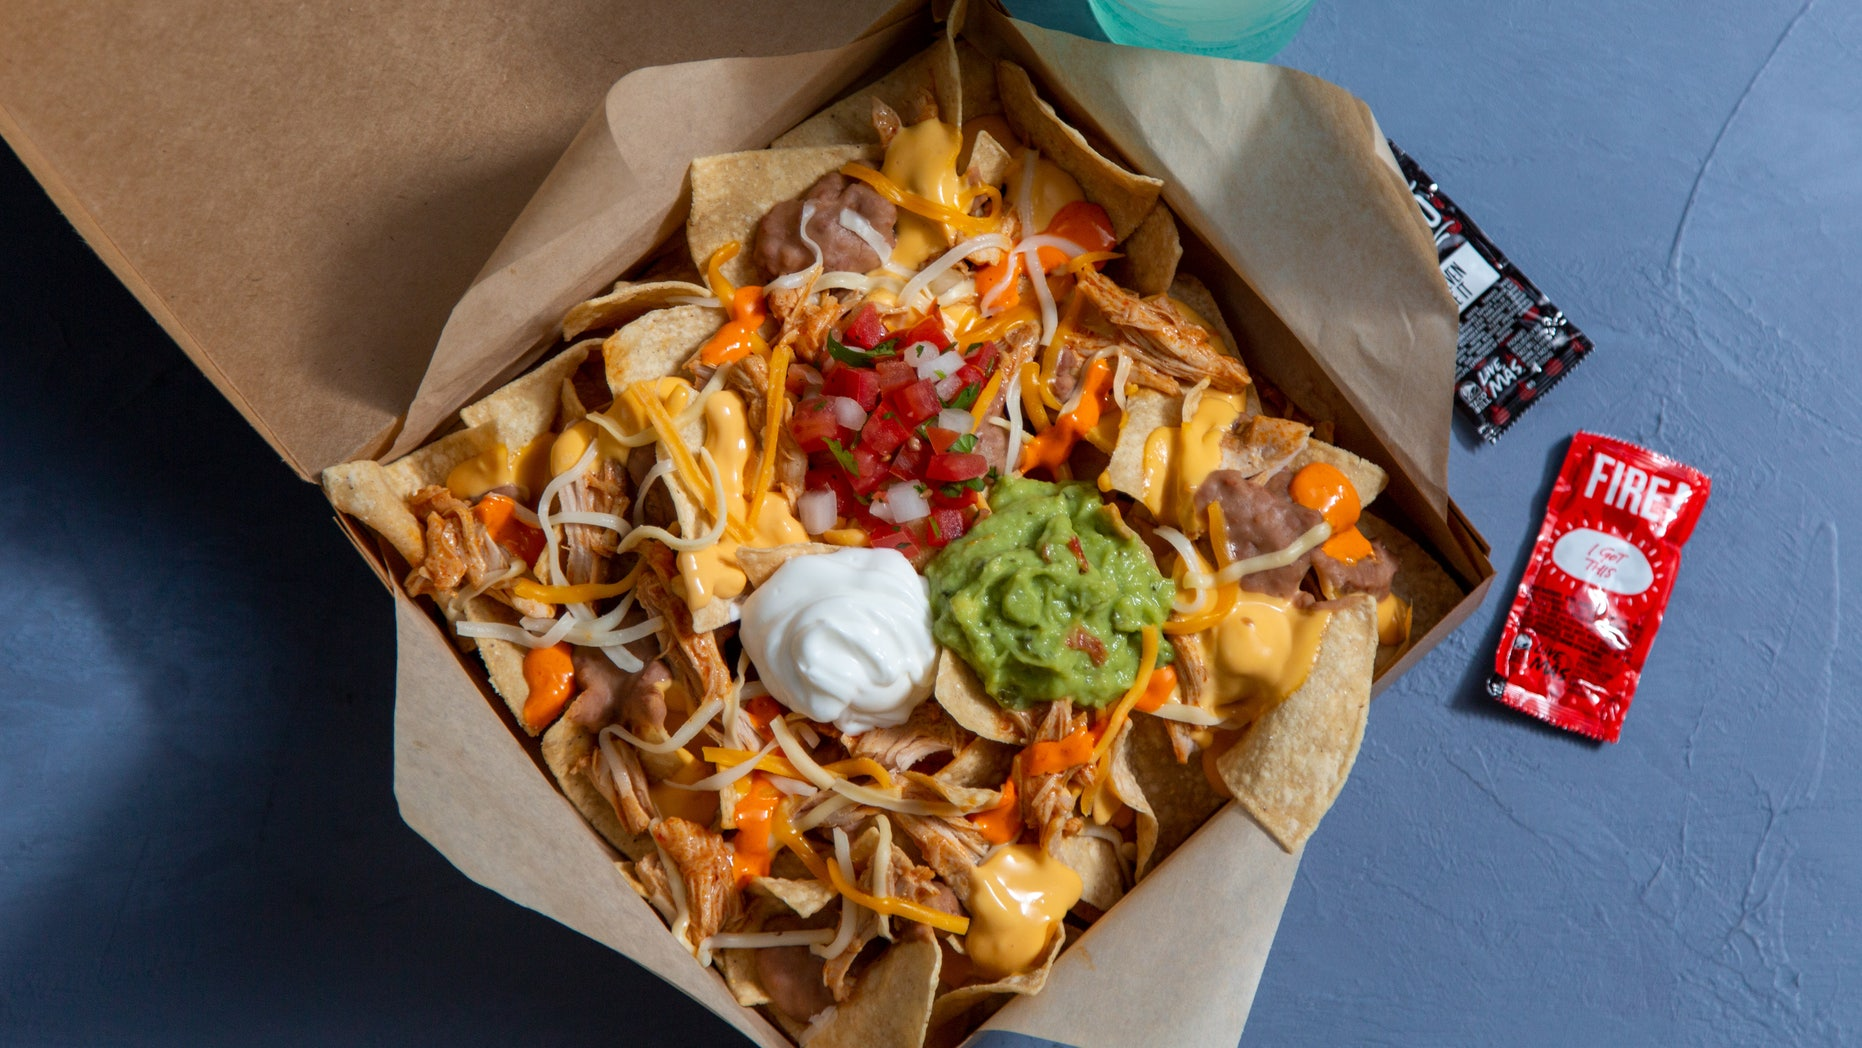 For $5, the Buffalo Chicken Nachos Box will be available in Charlotte, North Carolina, until mid-January.